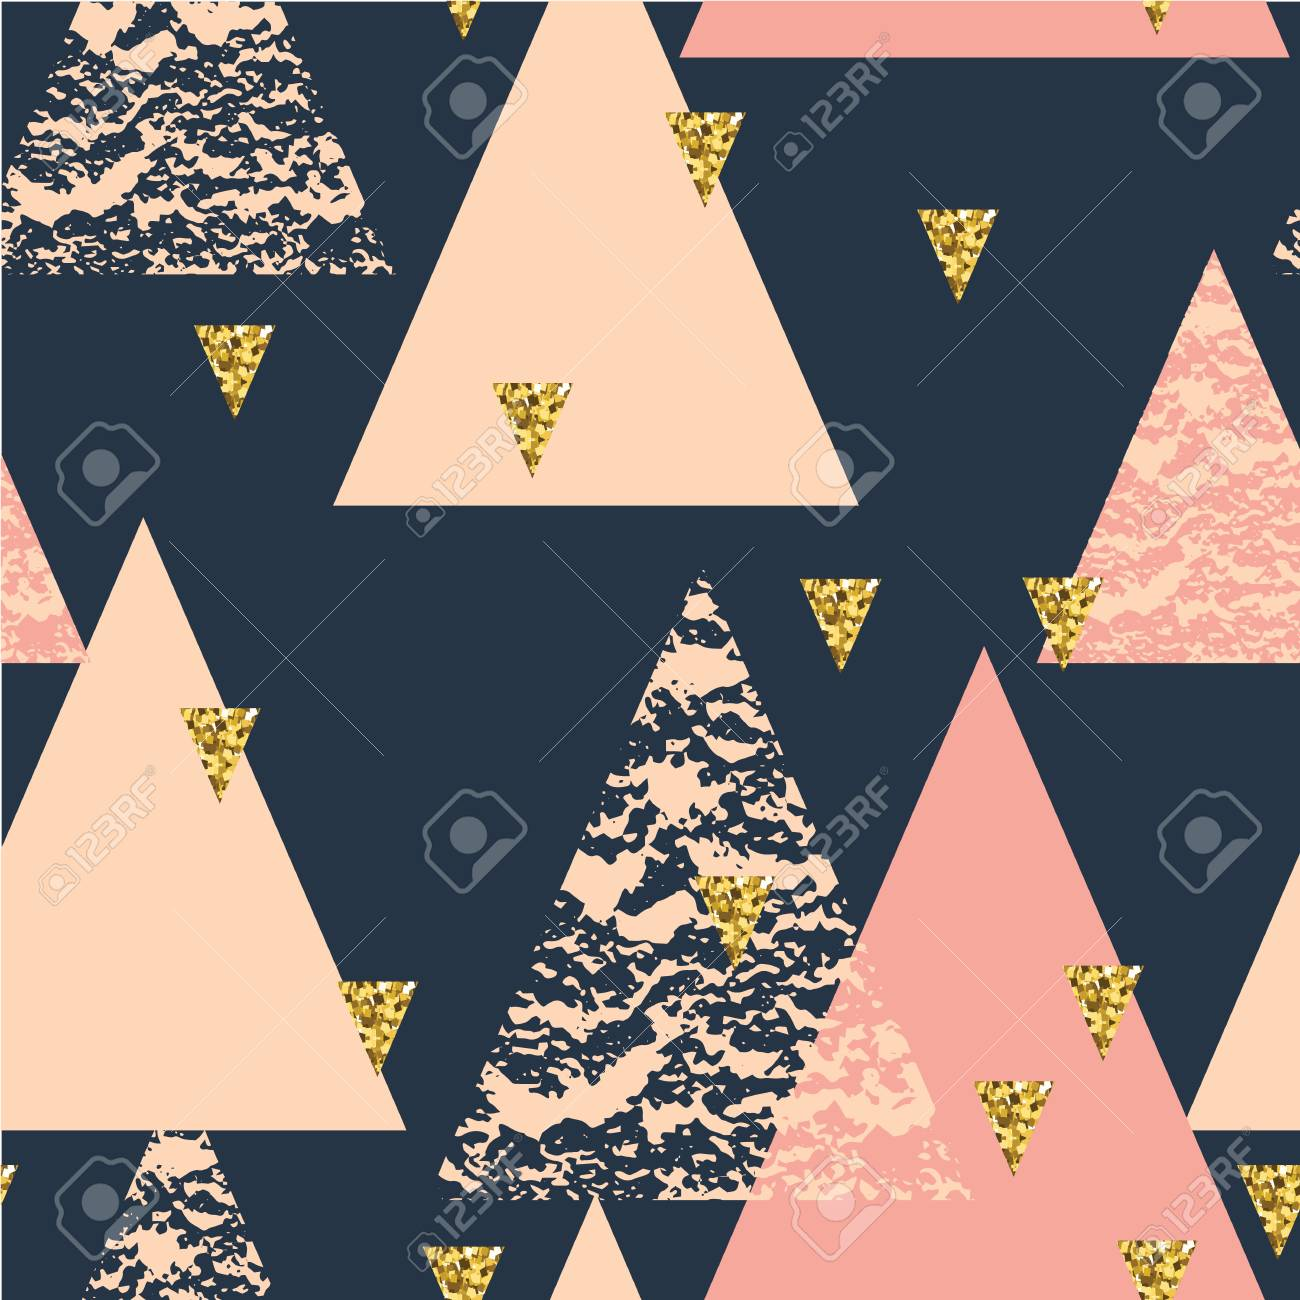 Abstract hand drawn geometric seamless repeat pattern with glitter texture. - 55070694